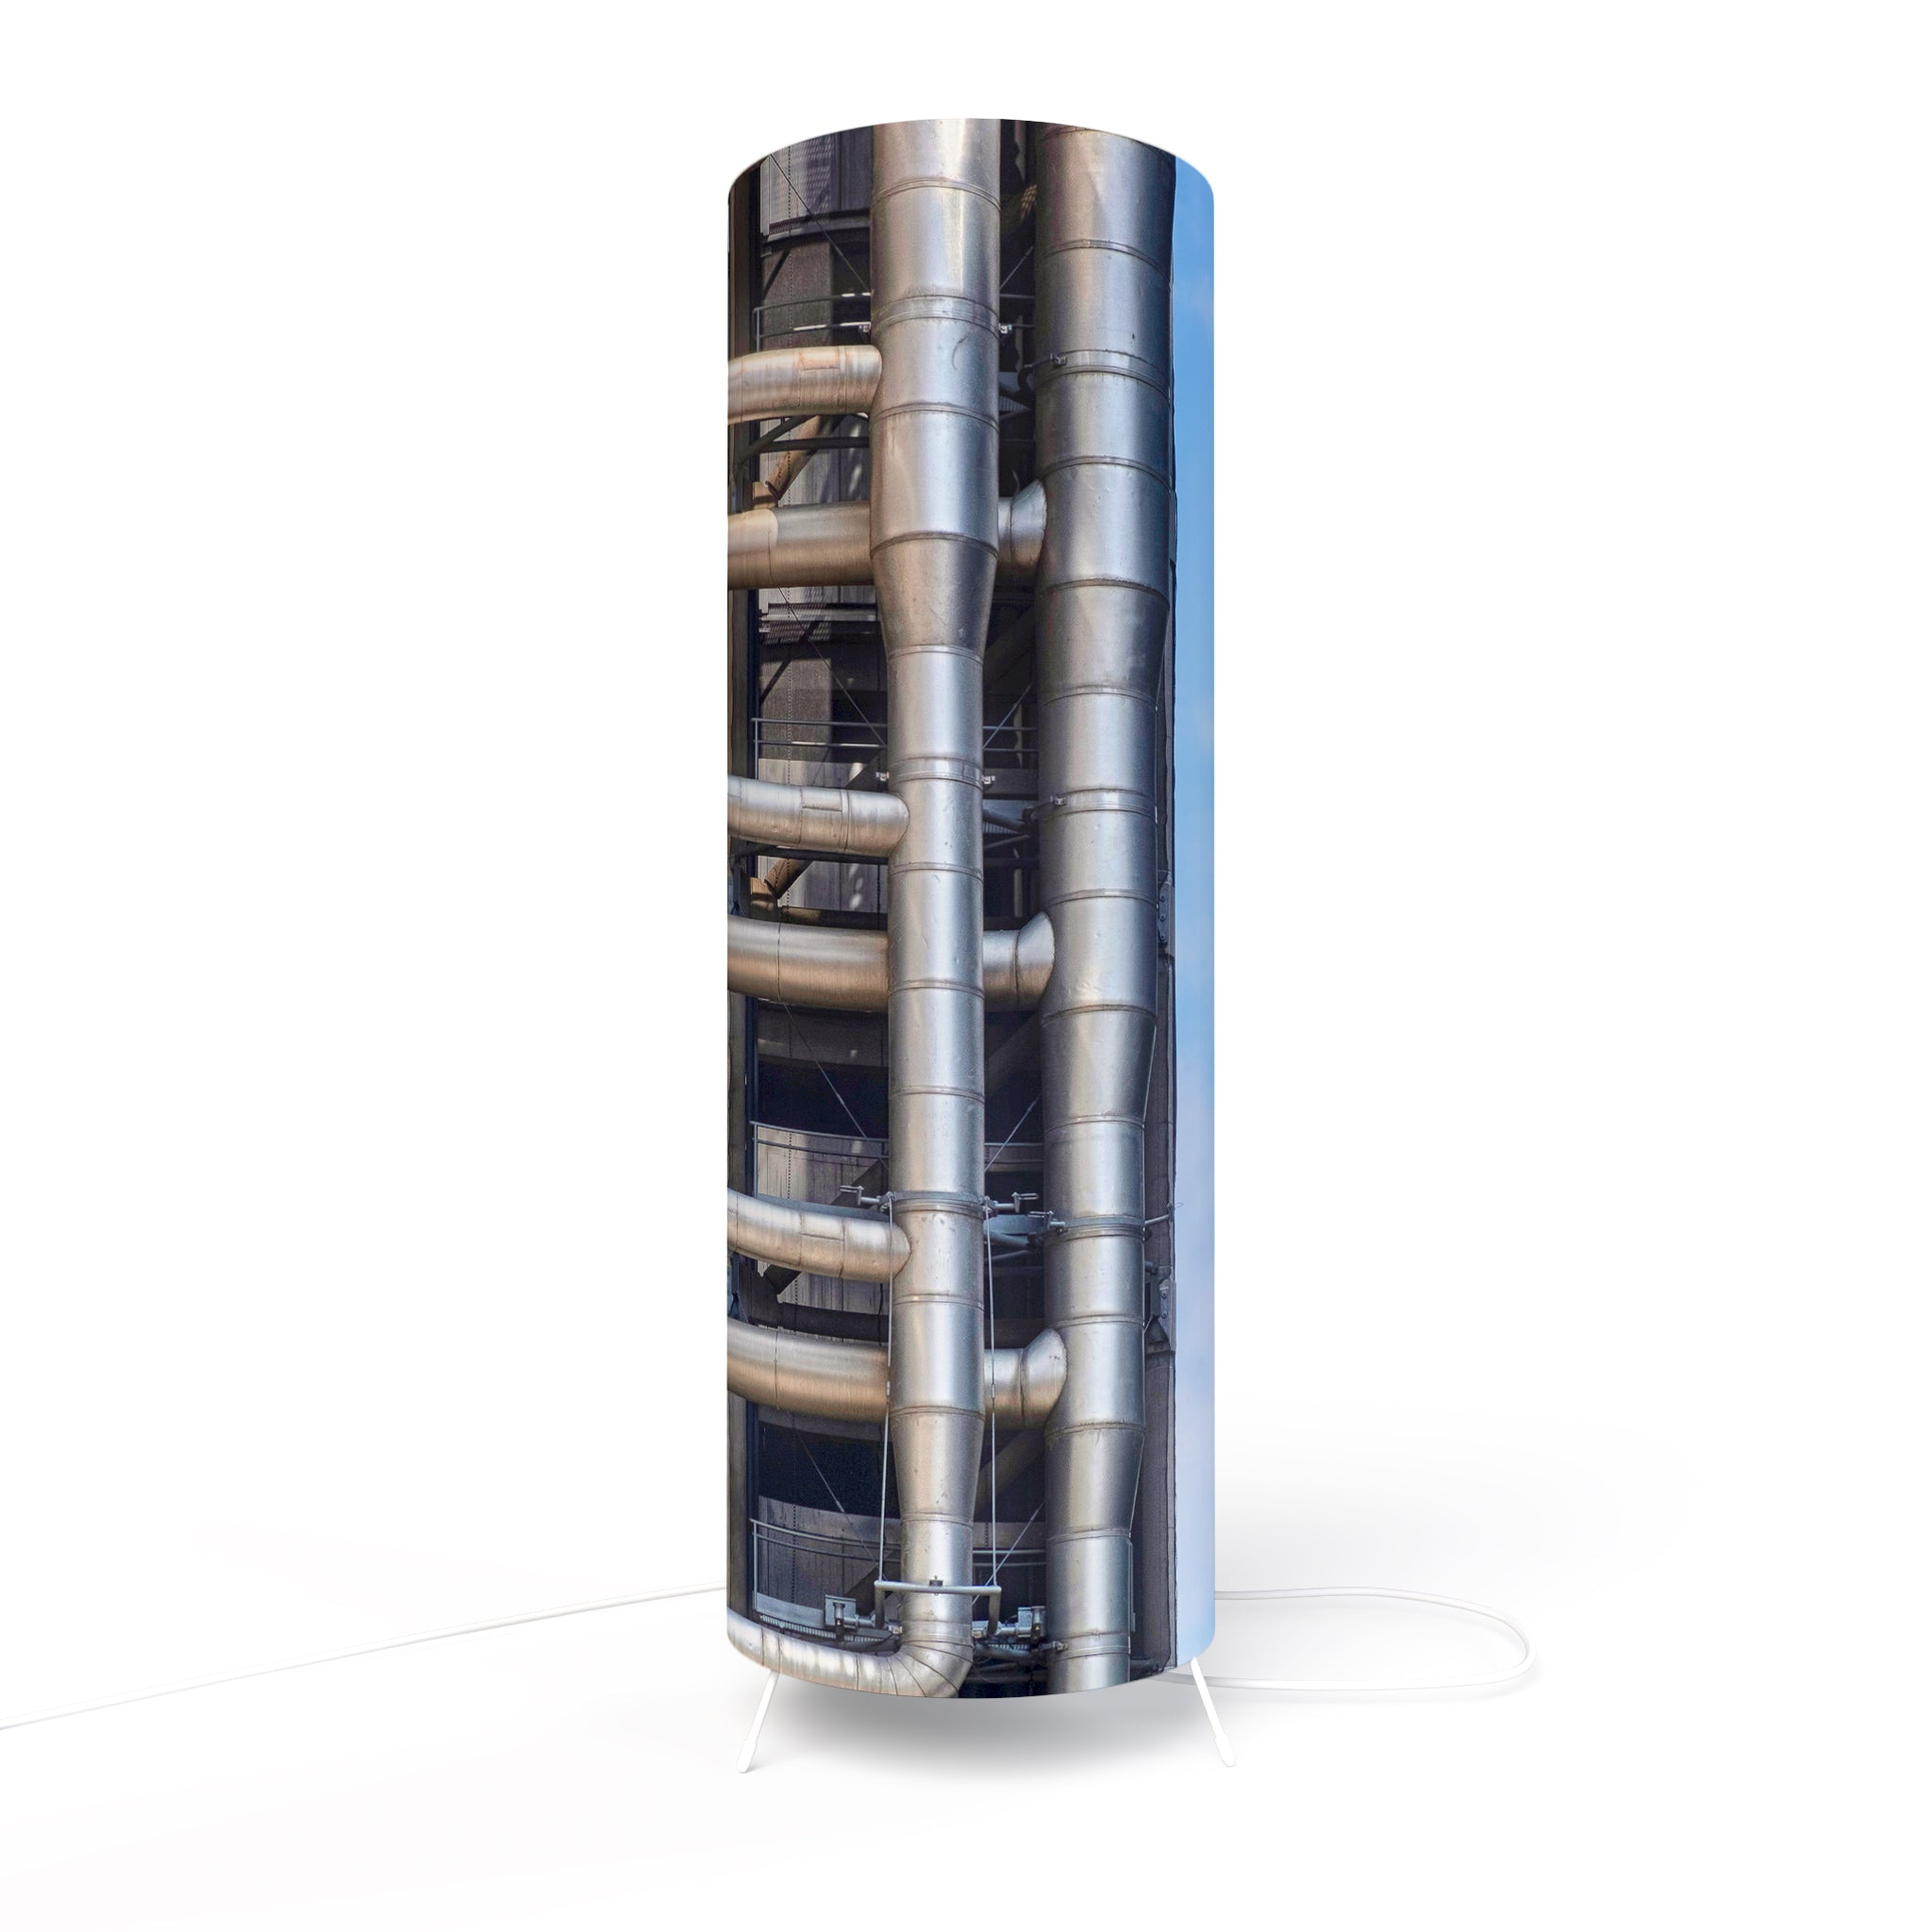 Modern Photo Lamp designed by Fotbee with image of Lloyd's Building